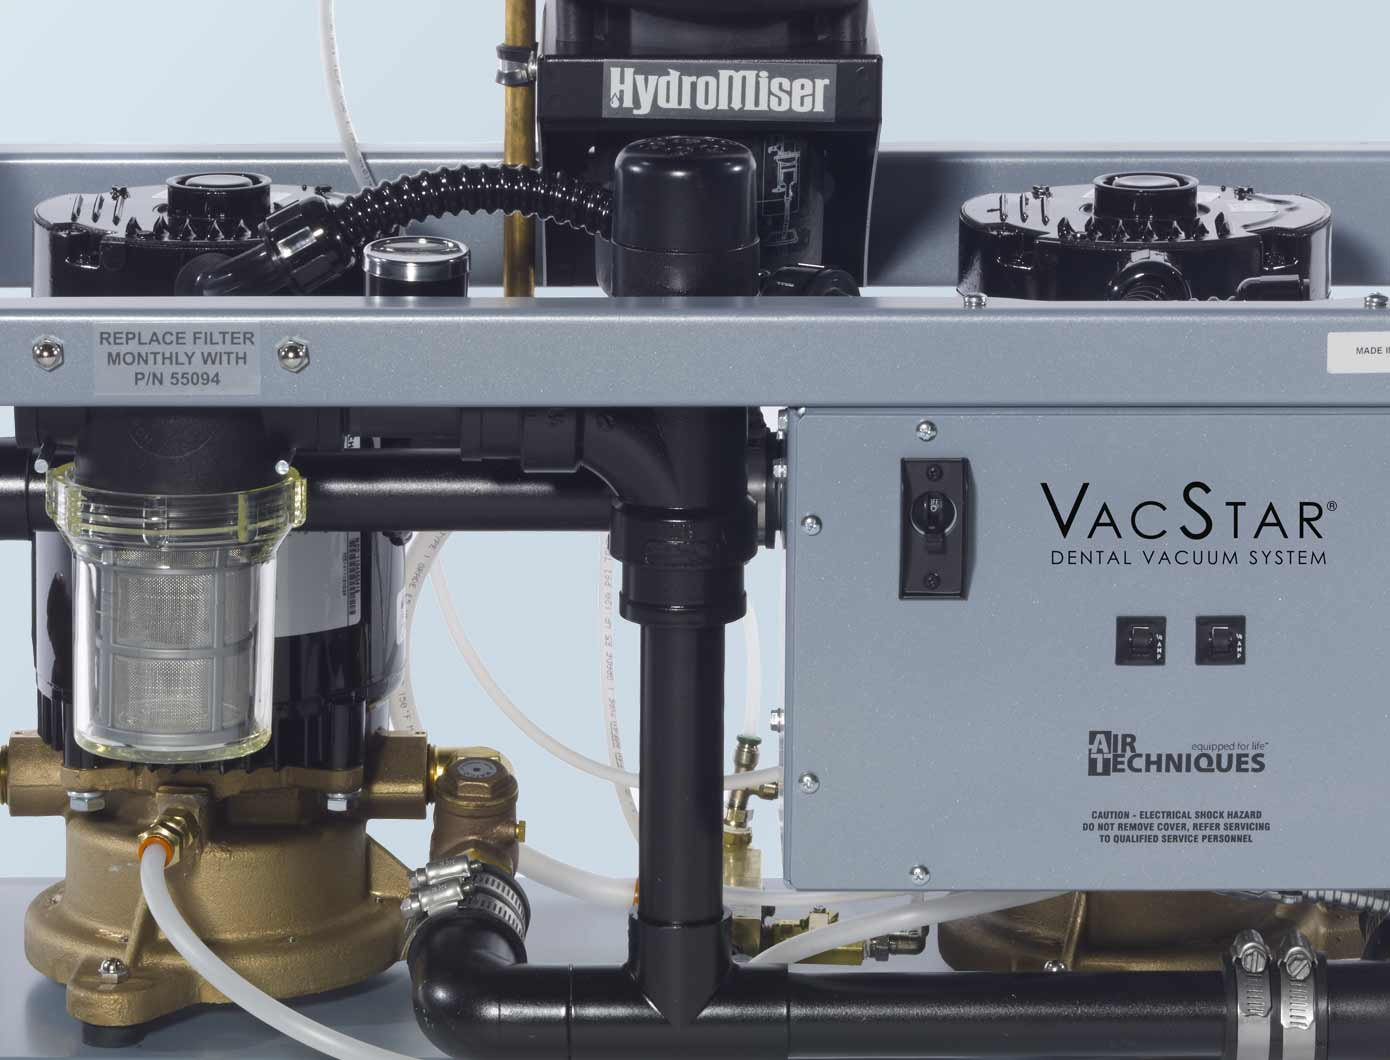 VacStar Wet Vacuum Maintenance 1 vacstar 80 80h air techniques  at bayanpartner.co